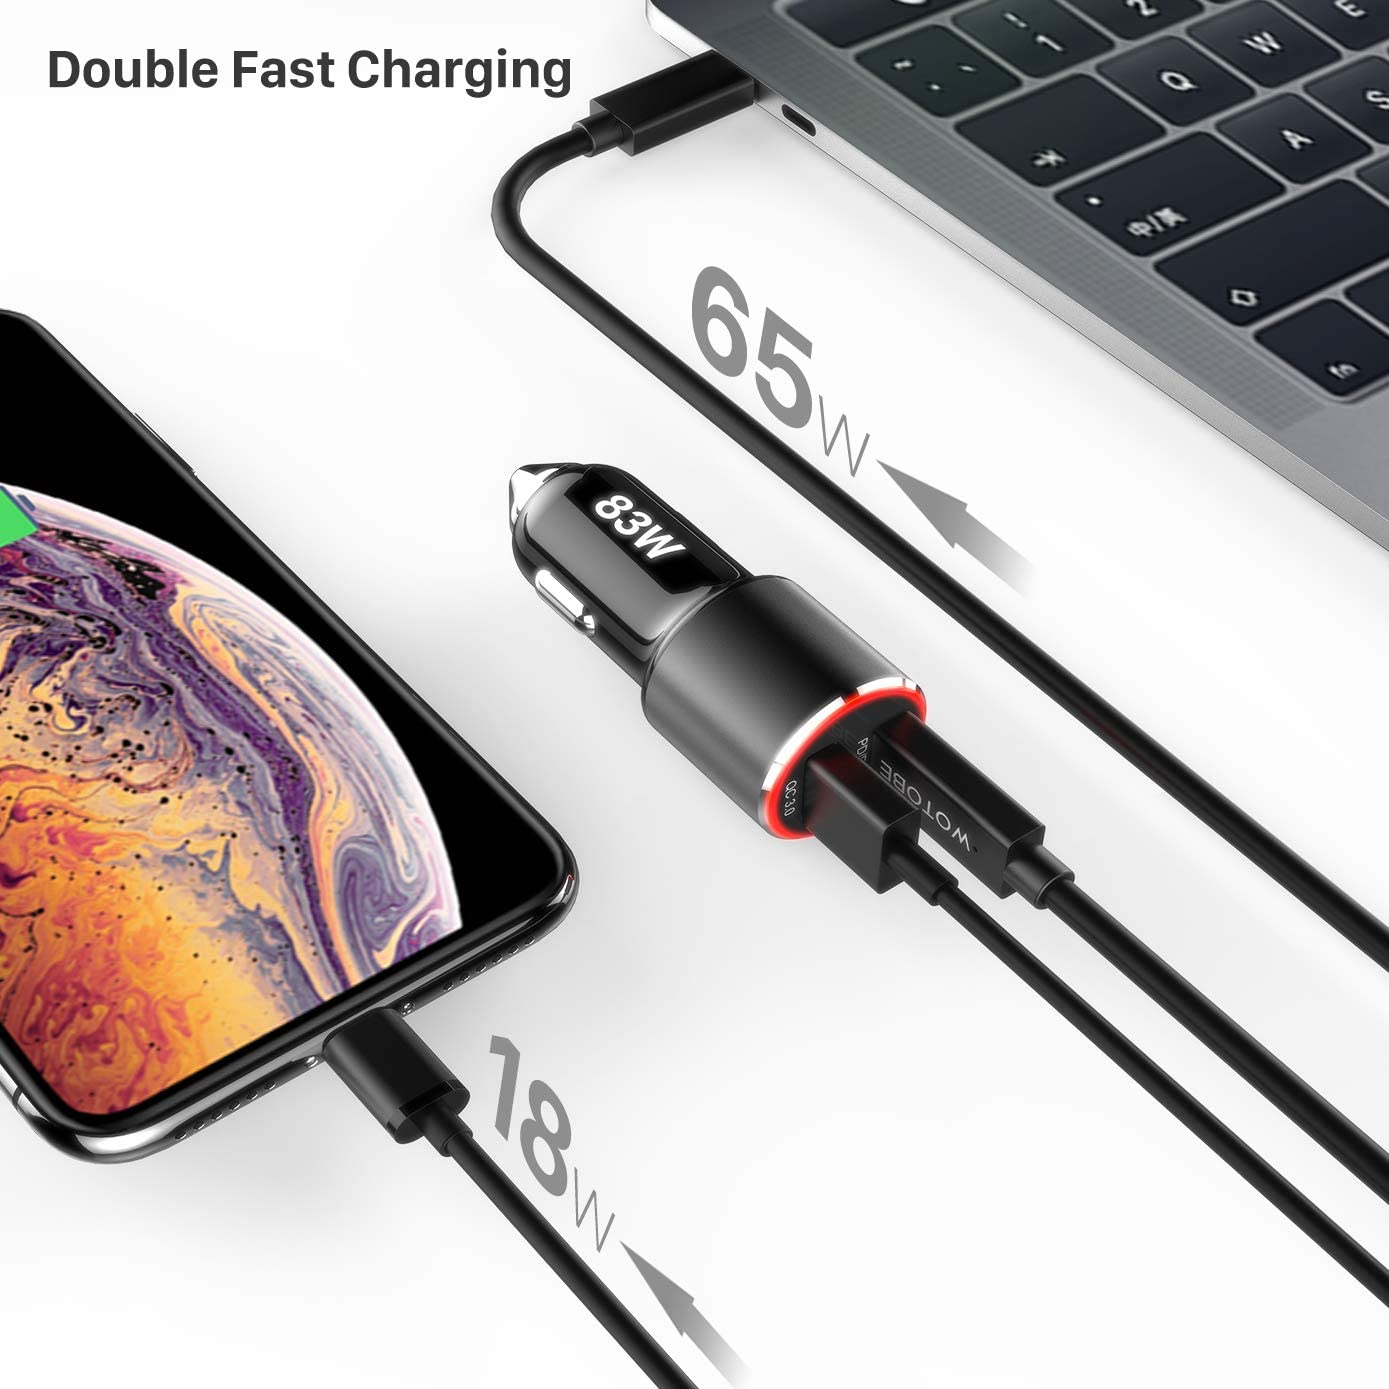 83W USB C Car Charger,WOTOBEUS Dual Type C Fast Car Phone Laptop Charger Adapter PD PPS 65W 45W 25W QC3.0 18W AFC with 5A USB C to C Cable/Cord/for iPhone SE 11//iPad//MacBook Pro//ThinkPad//S20//Note10